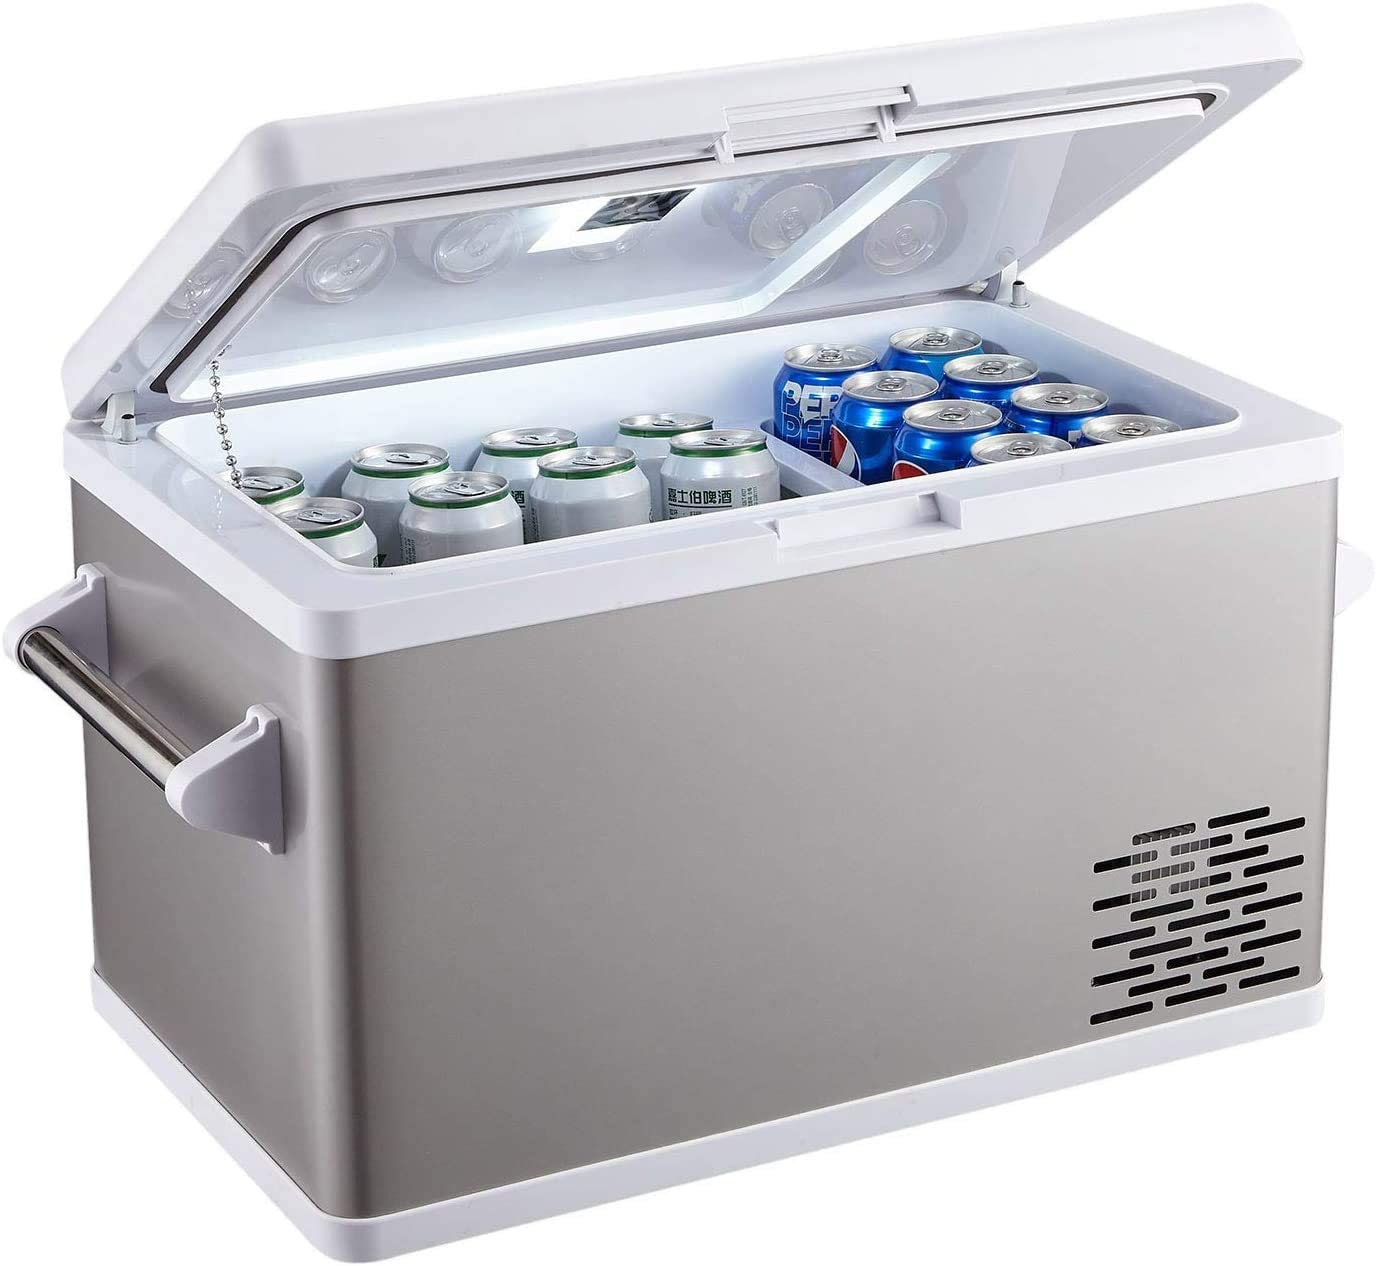 Ausranvik 37-Quart Portable Fridge Car Refrigerator Car Fridge Car Freezer -4°F ~ 68°F - 12V/24V DC